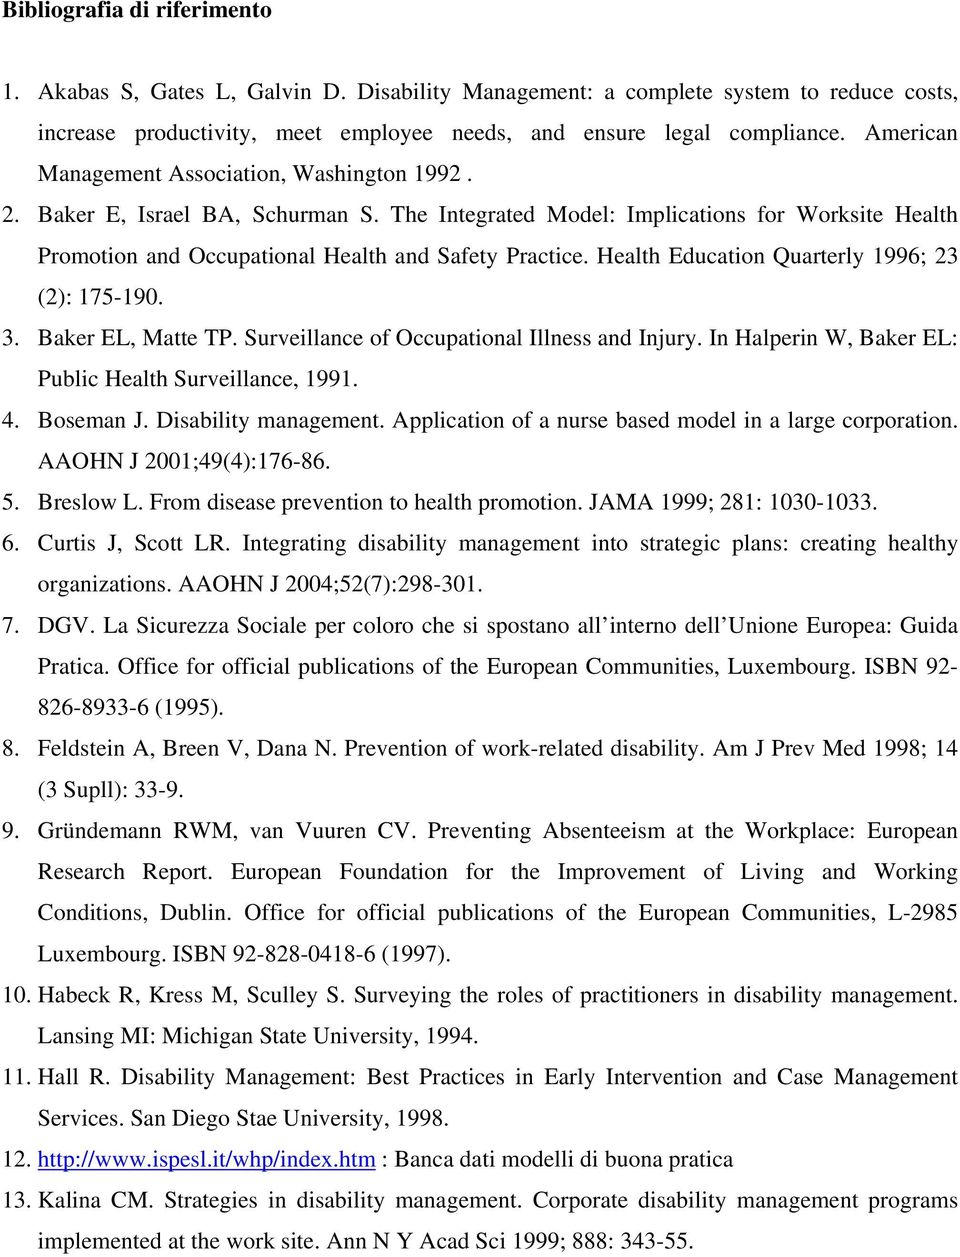 Health Education Quarterly 1996; 23 (2): 175-190. 3. Baker EL, Matte TP. Surveillance of Occupational Illness and Injury. In Halperin W, Baker EL: Public Health Surveillance, 1991. 4. Boseman J.